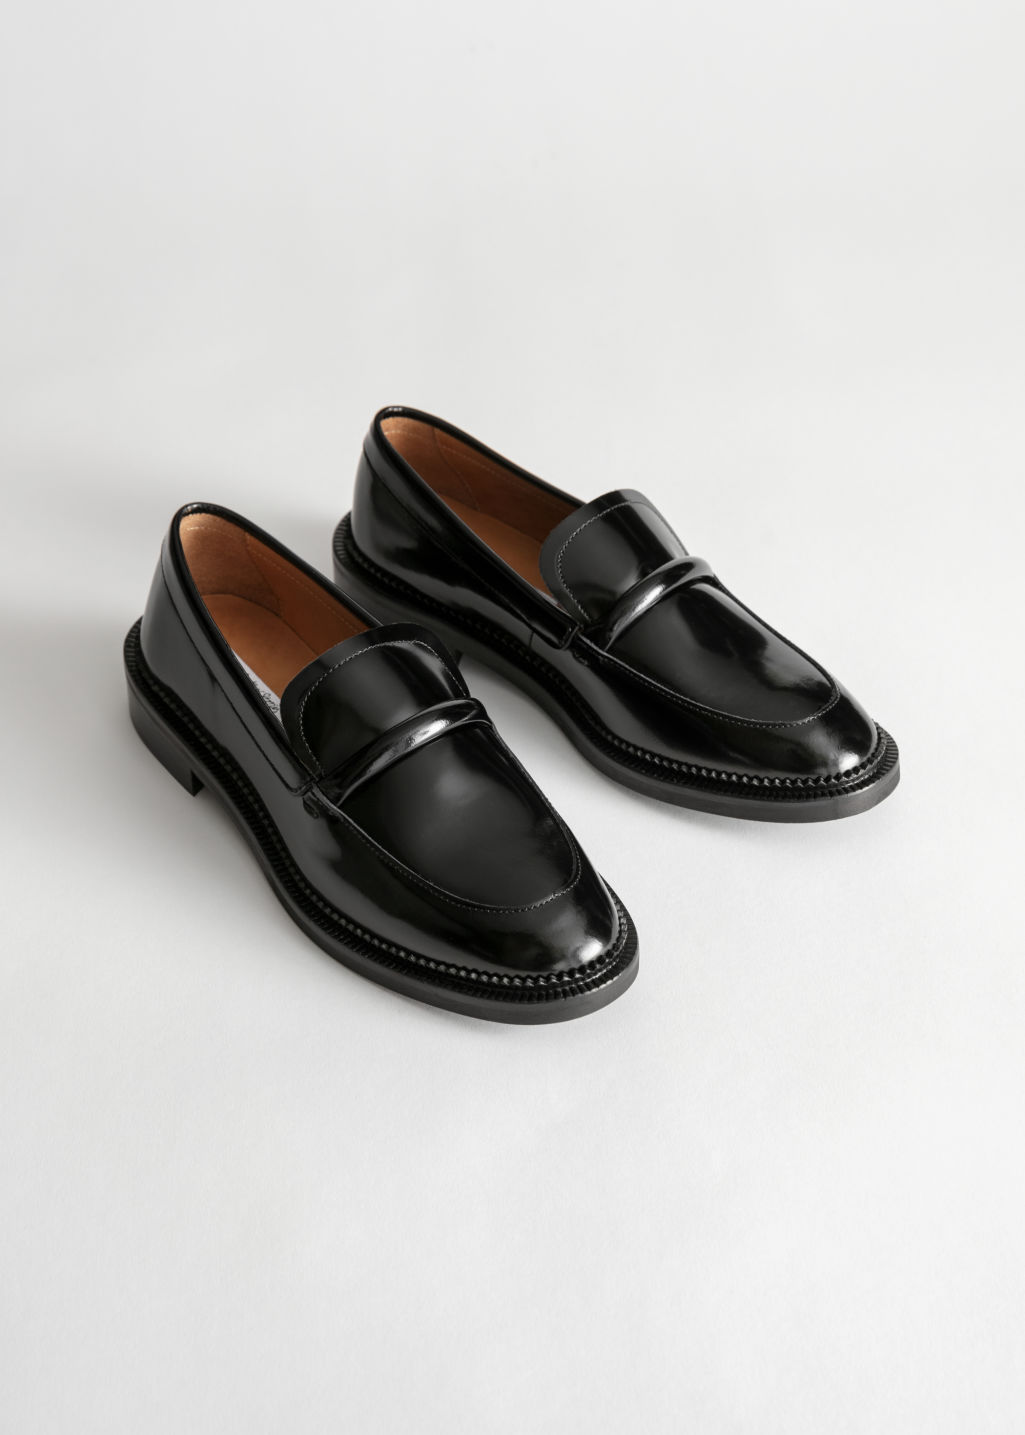 f3e8a01b9c3 Leather Penny Loafers - Black - Loafers -   Other Stories